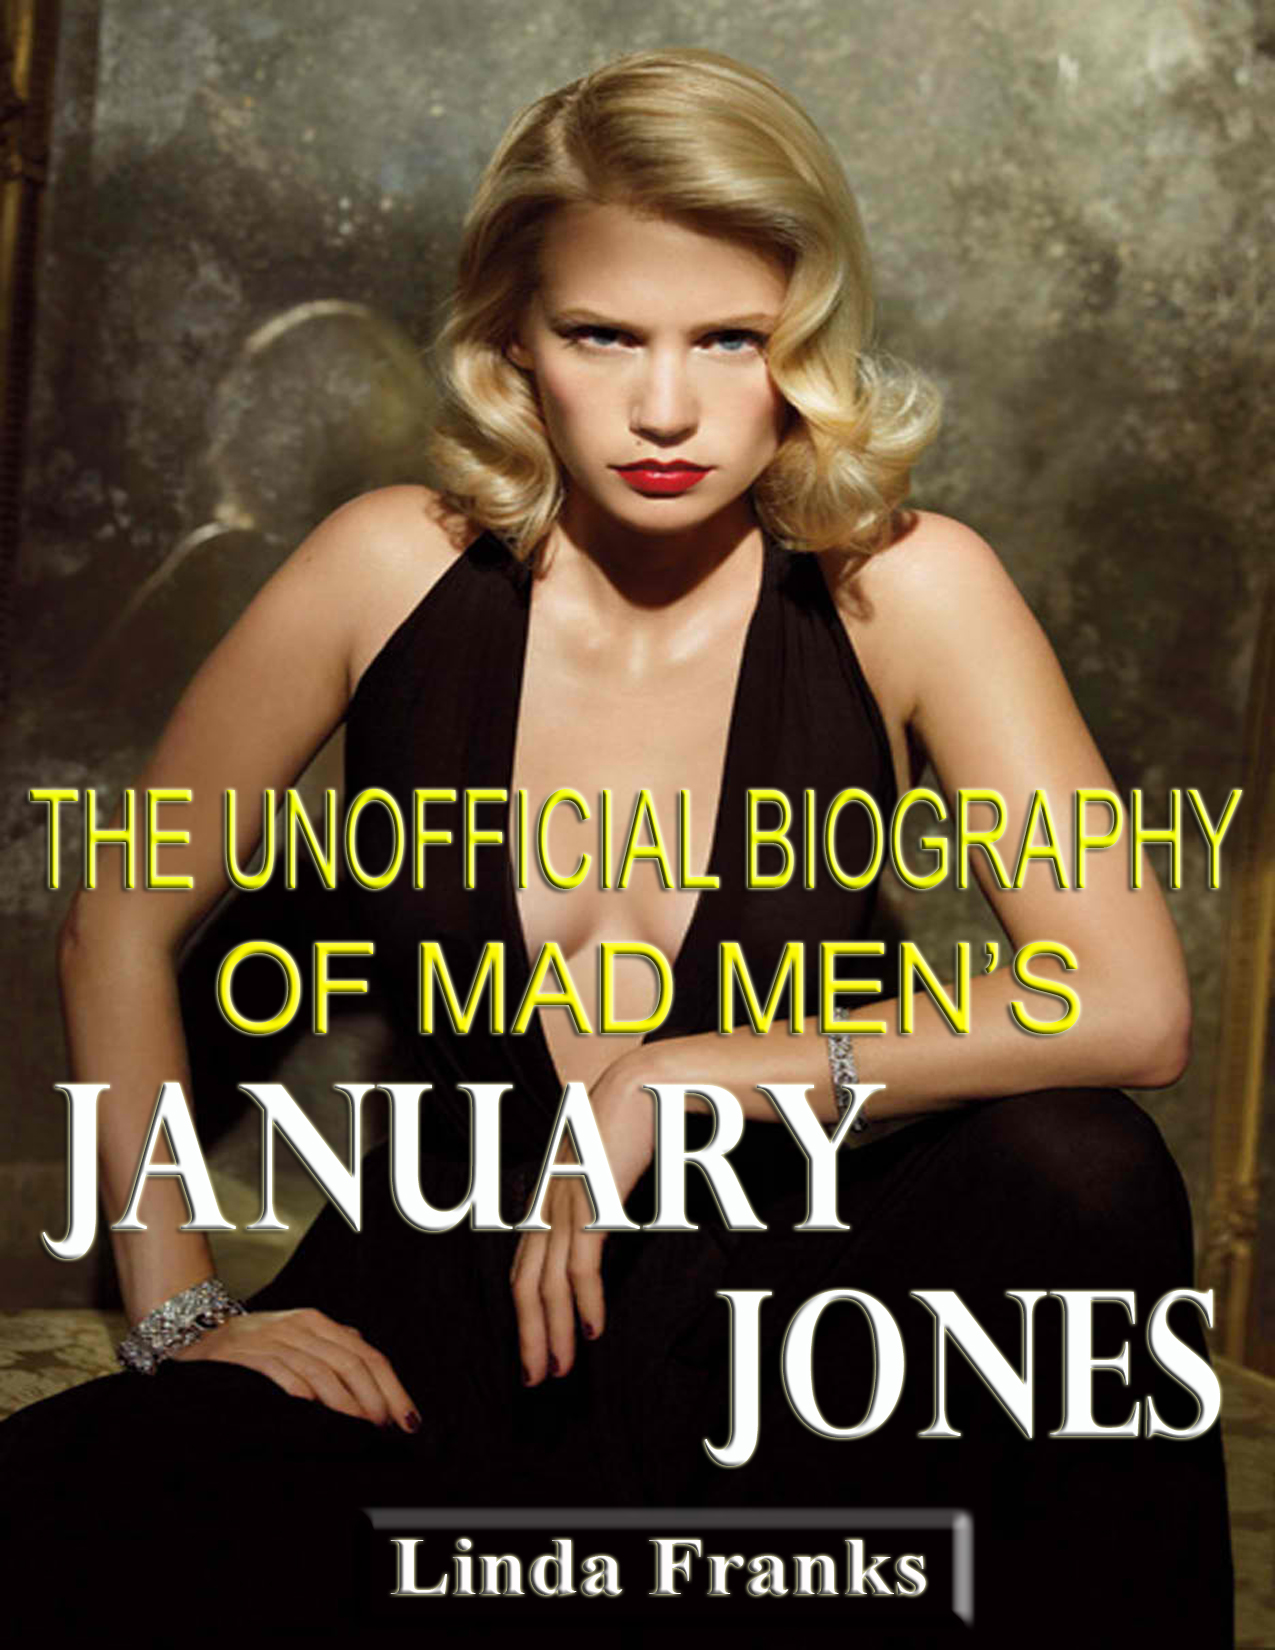 Linda Franks - The Unofficial Biography of Mad Men's January Jones